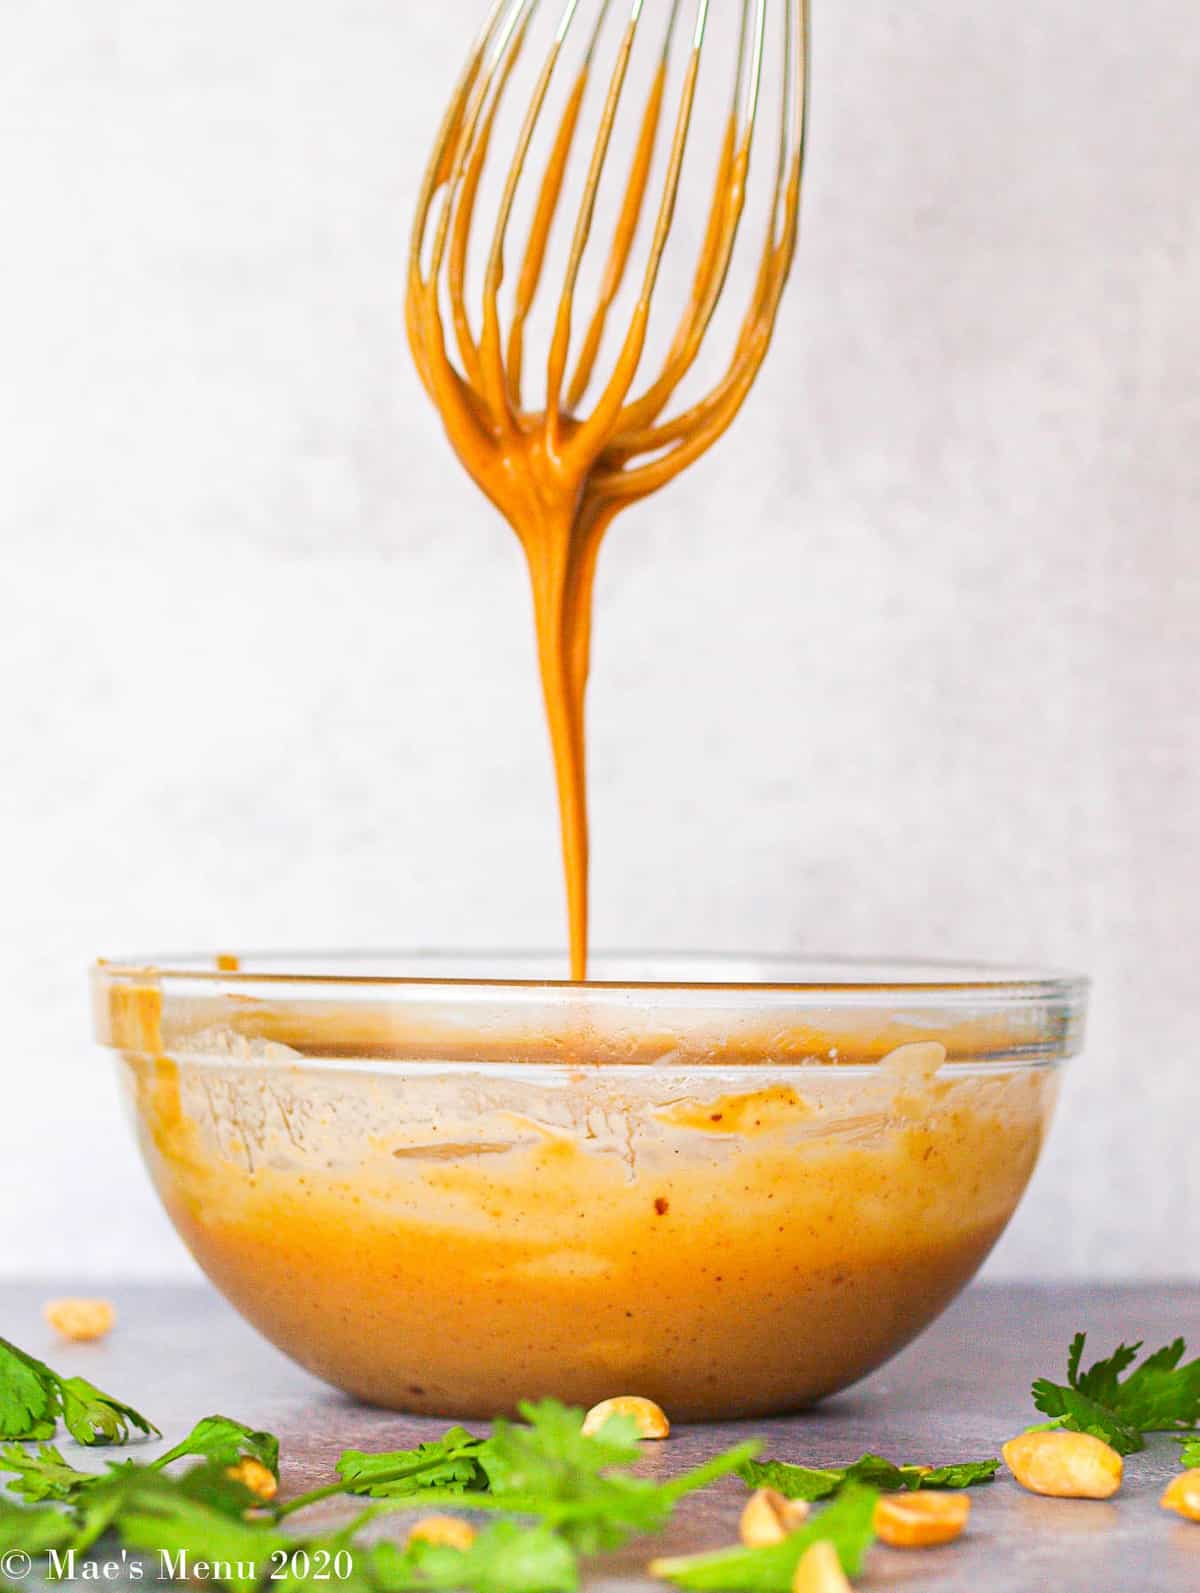 A side shot of a clear bowl of dressing with a whisk drizzling the dressing into the bowl